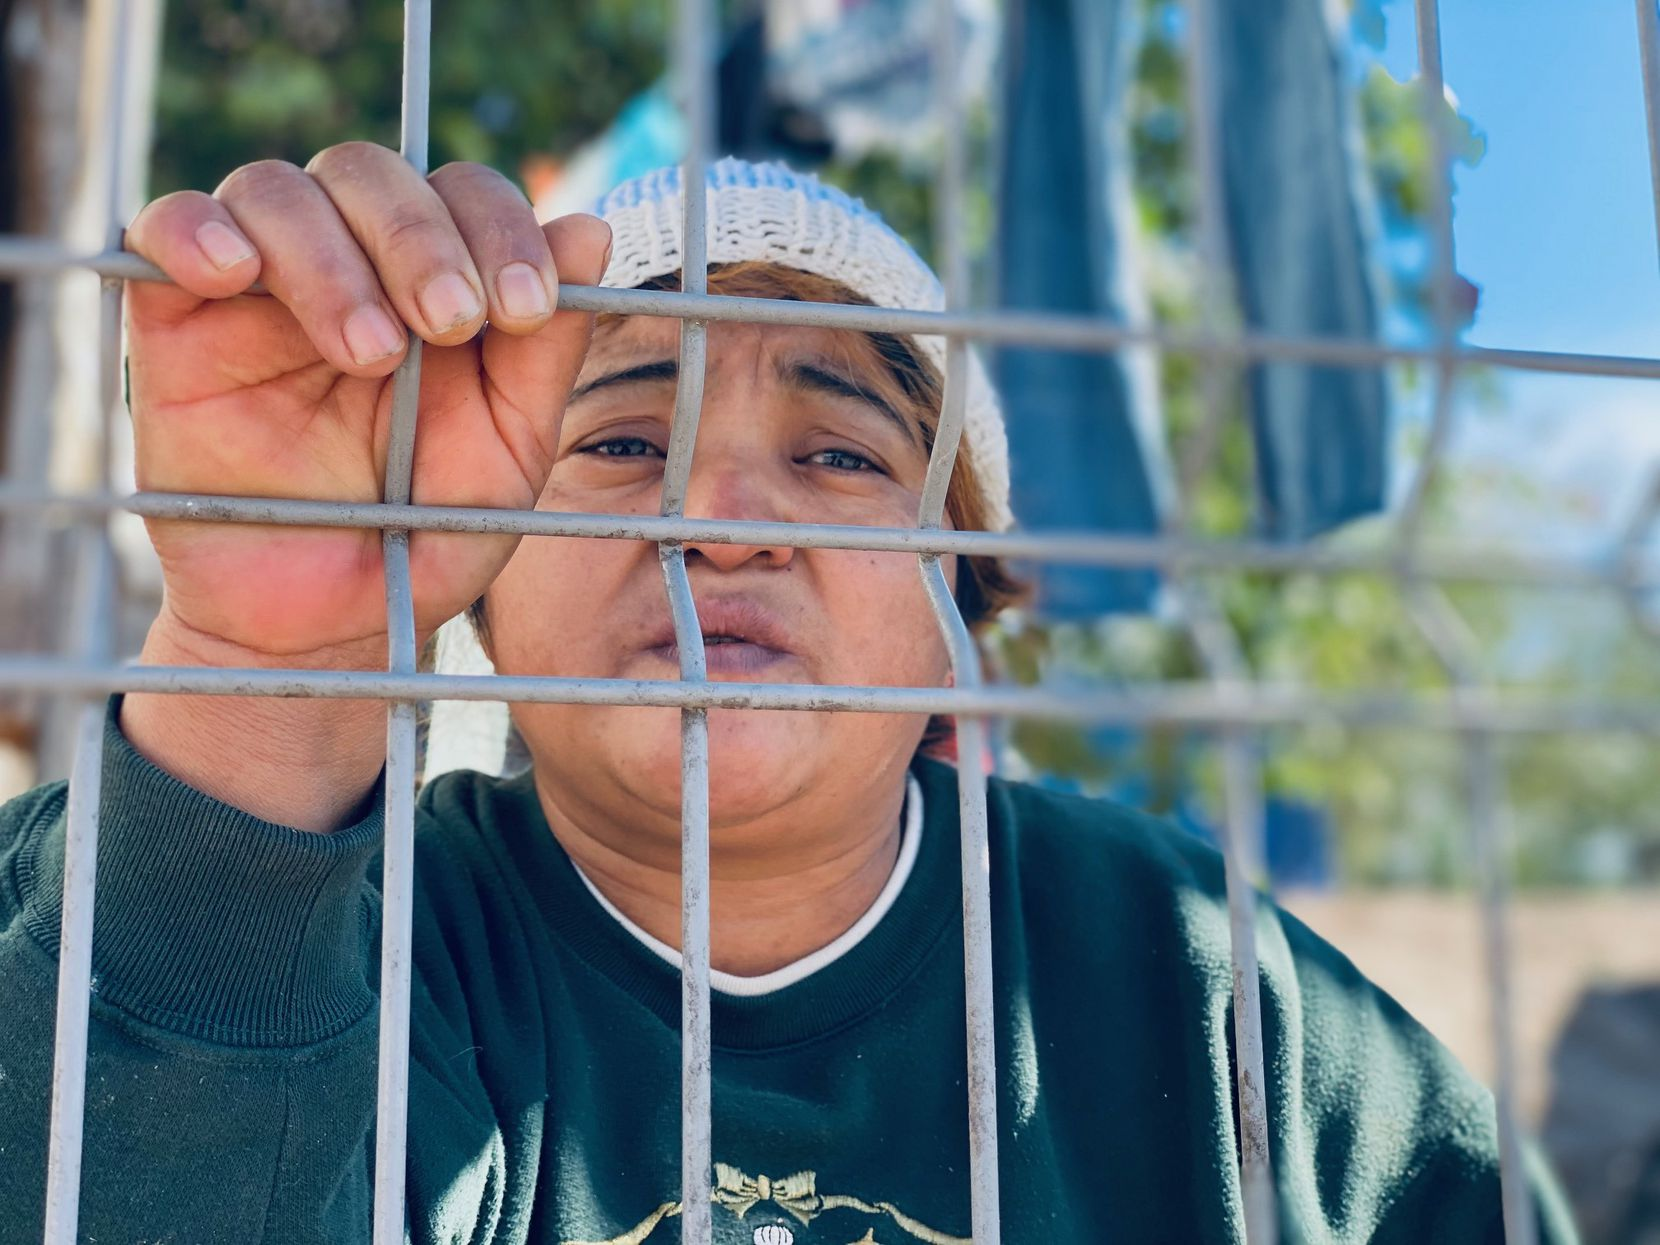 Ana Sorto, an asylum-seeker from Honduras, has been in a makeshift migrant camp in Matamoros, Mexico, for the past 17 months, waiting for an immigration court hearing. She hopes she gets the opportunity under the Biden administration.